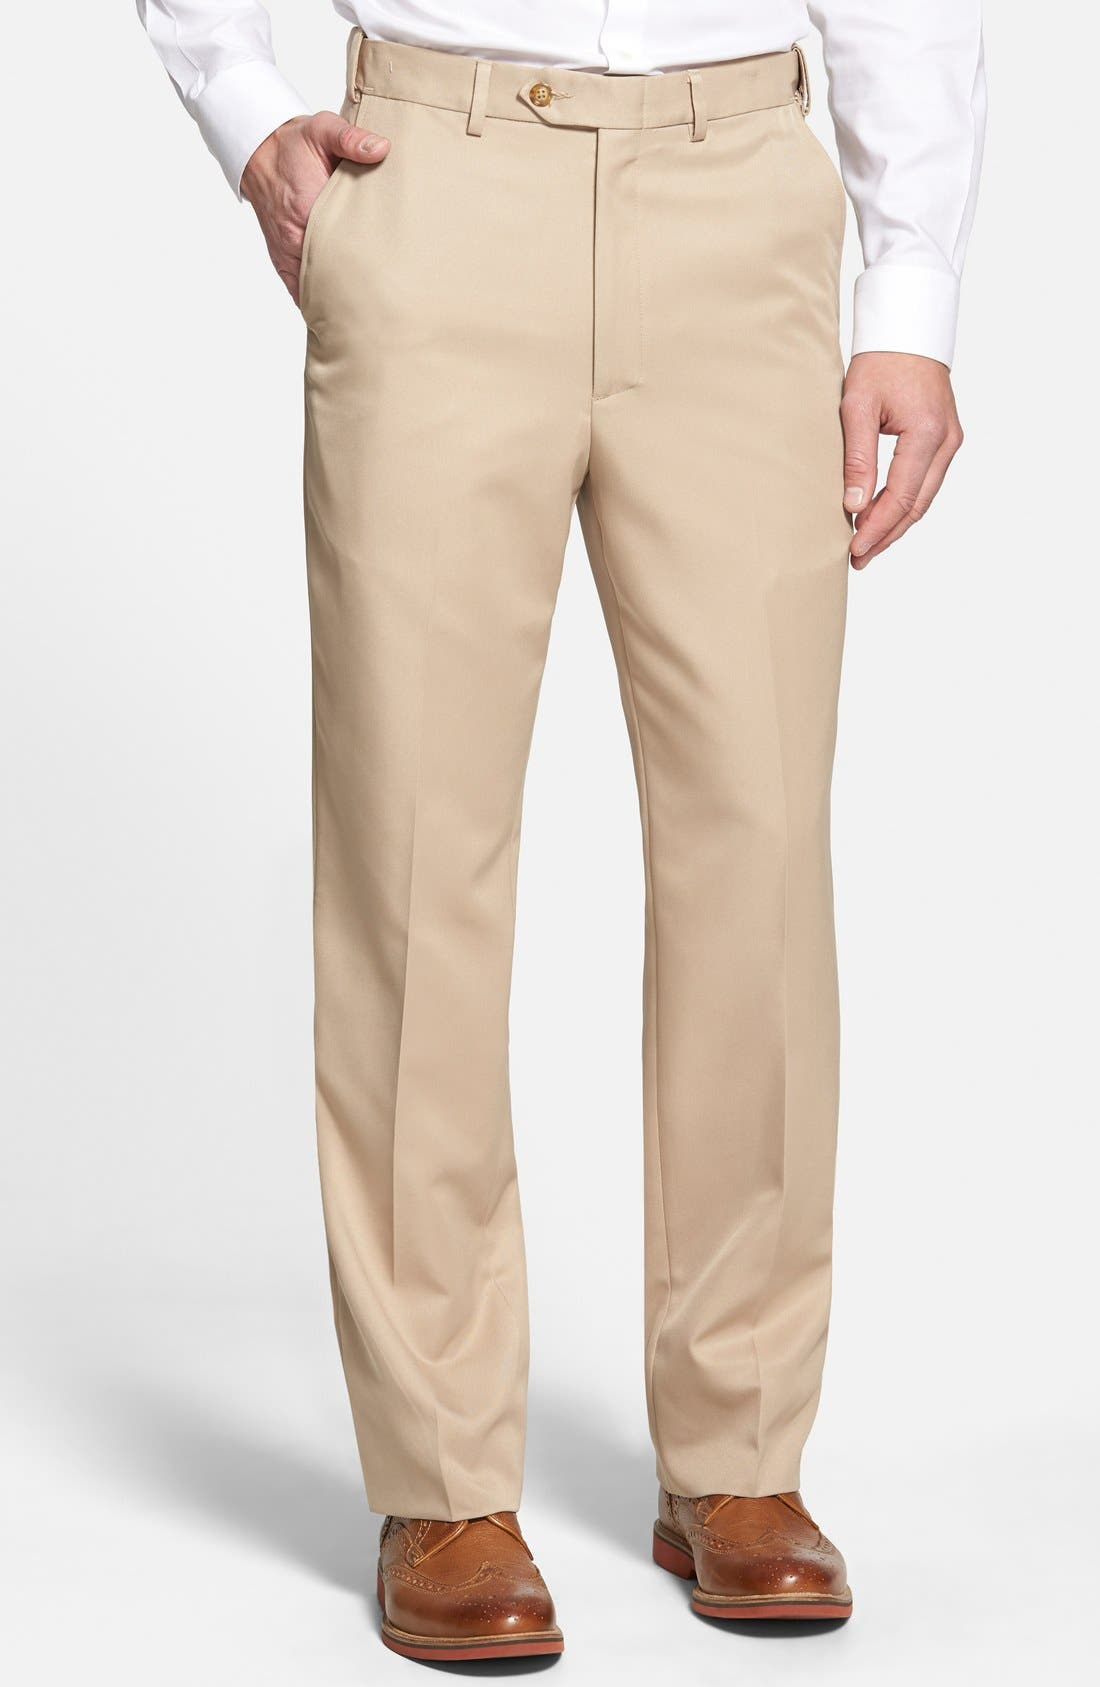 Self Sizer Waist Flat Front Trousers,                         Main,                         color, Tan